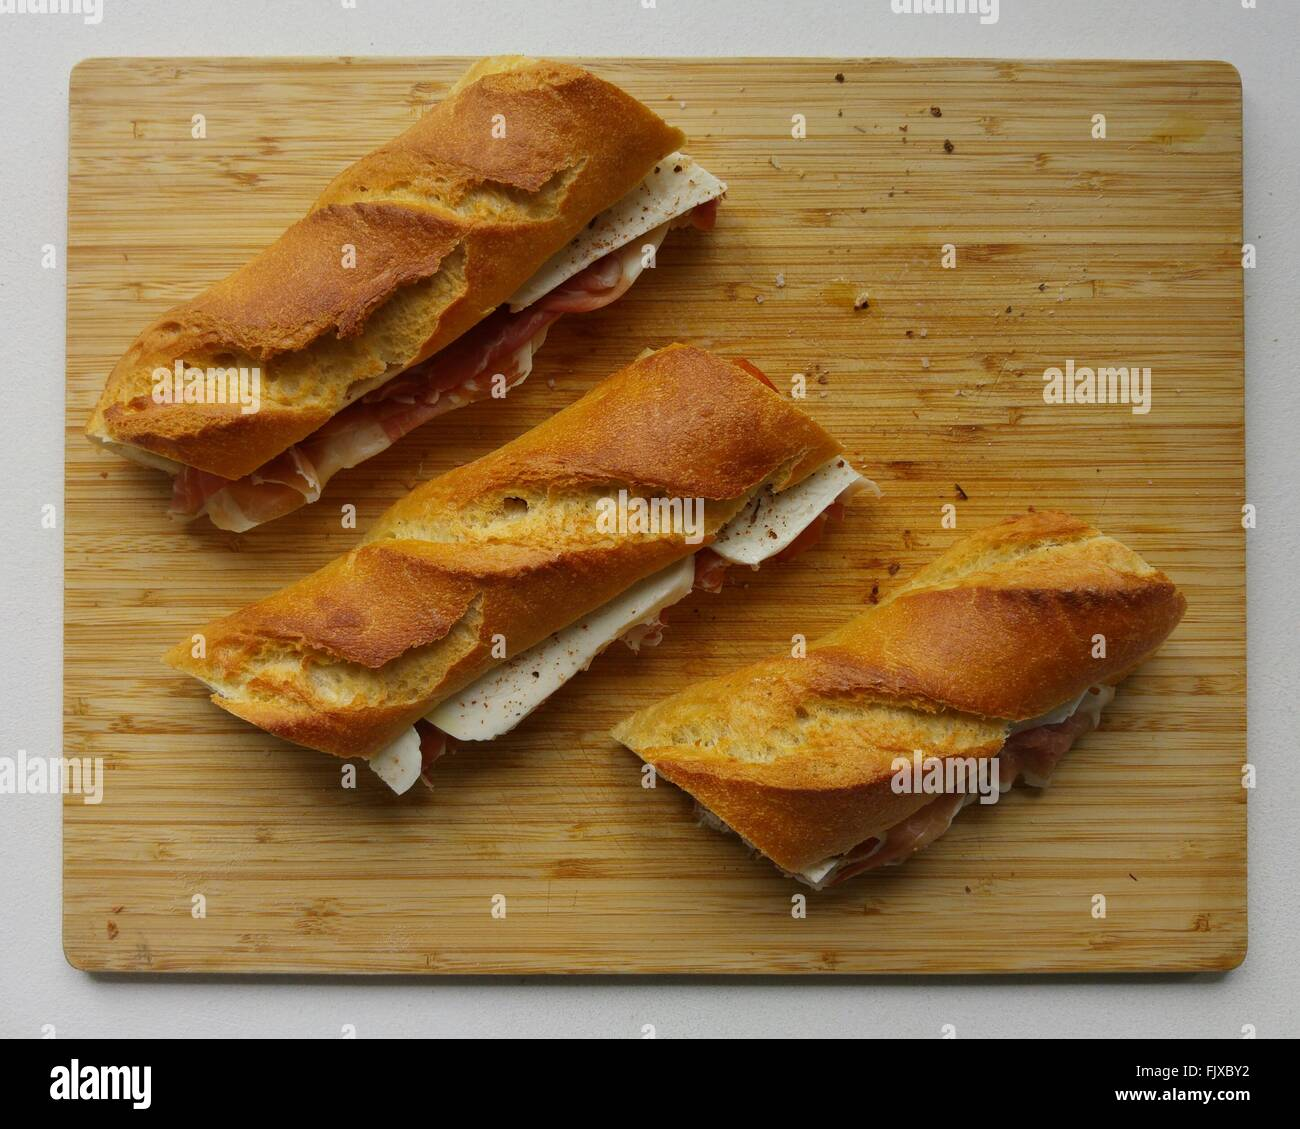 High Angle View Of Sandwiches On Cutting Board - Stock Image